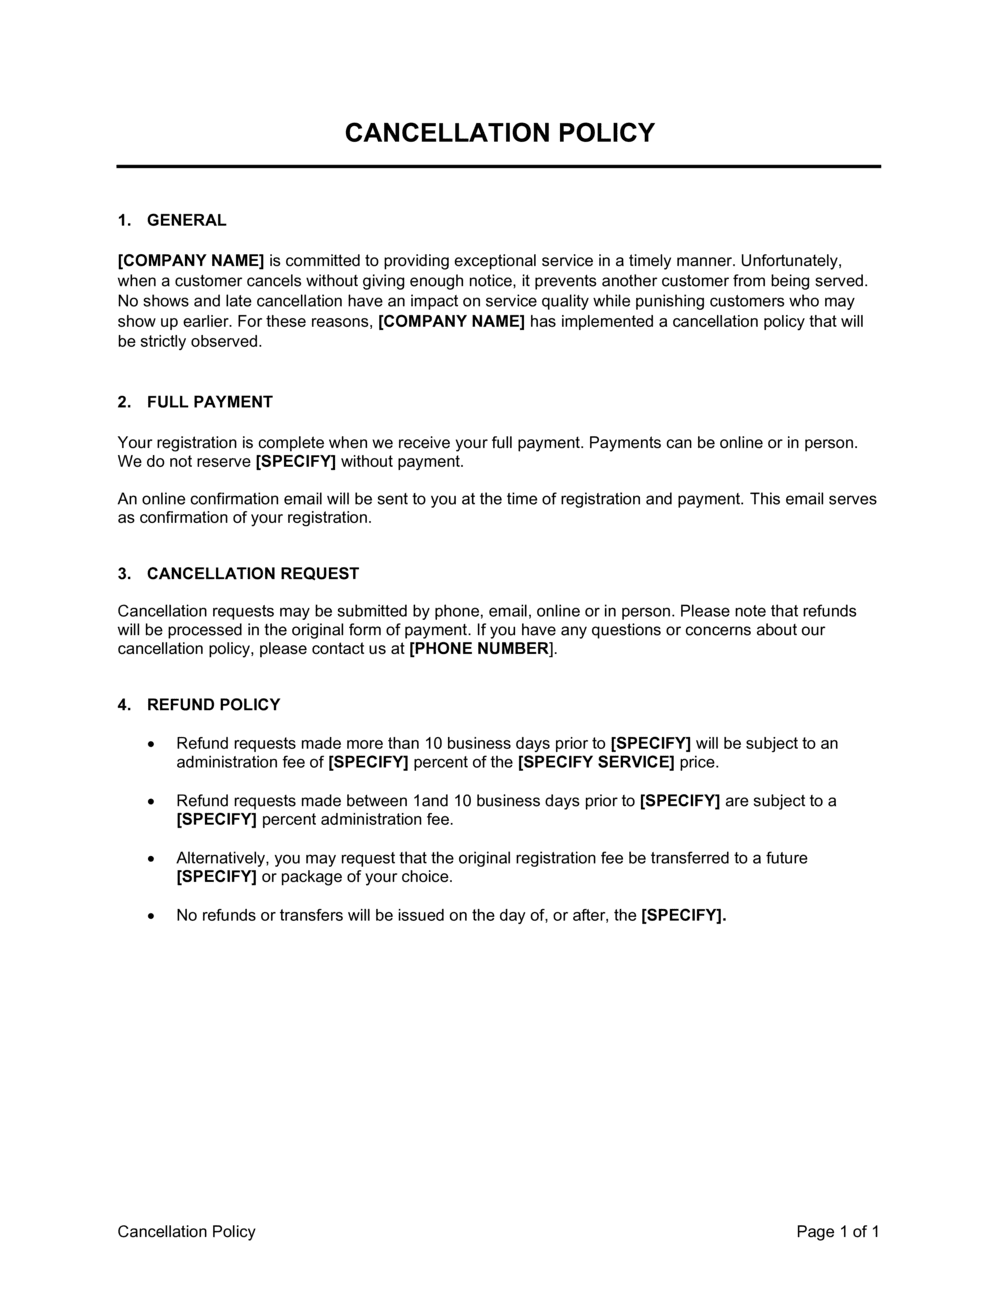 Business-in-a-Box's Cancellation Policy Template